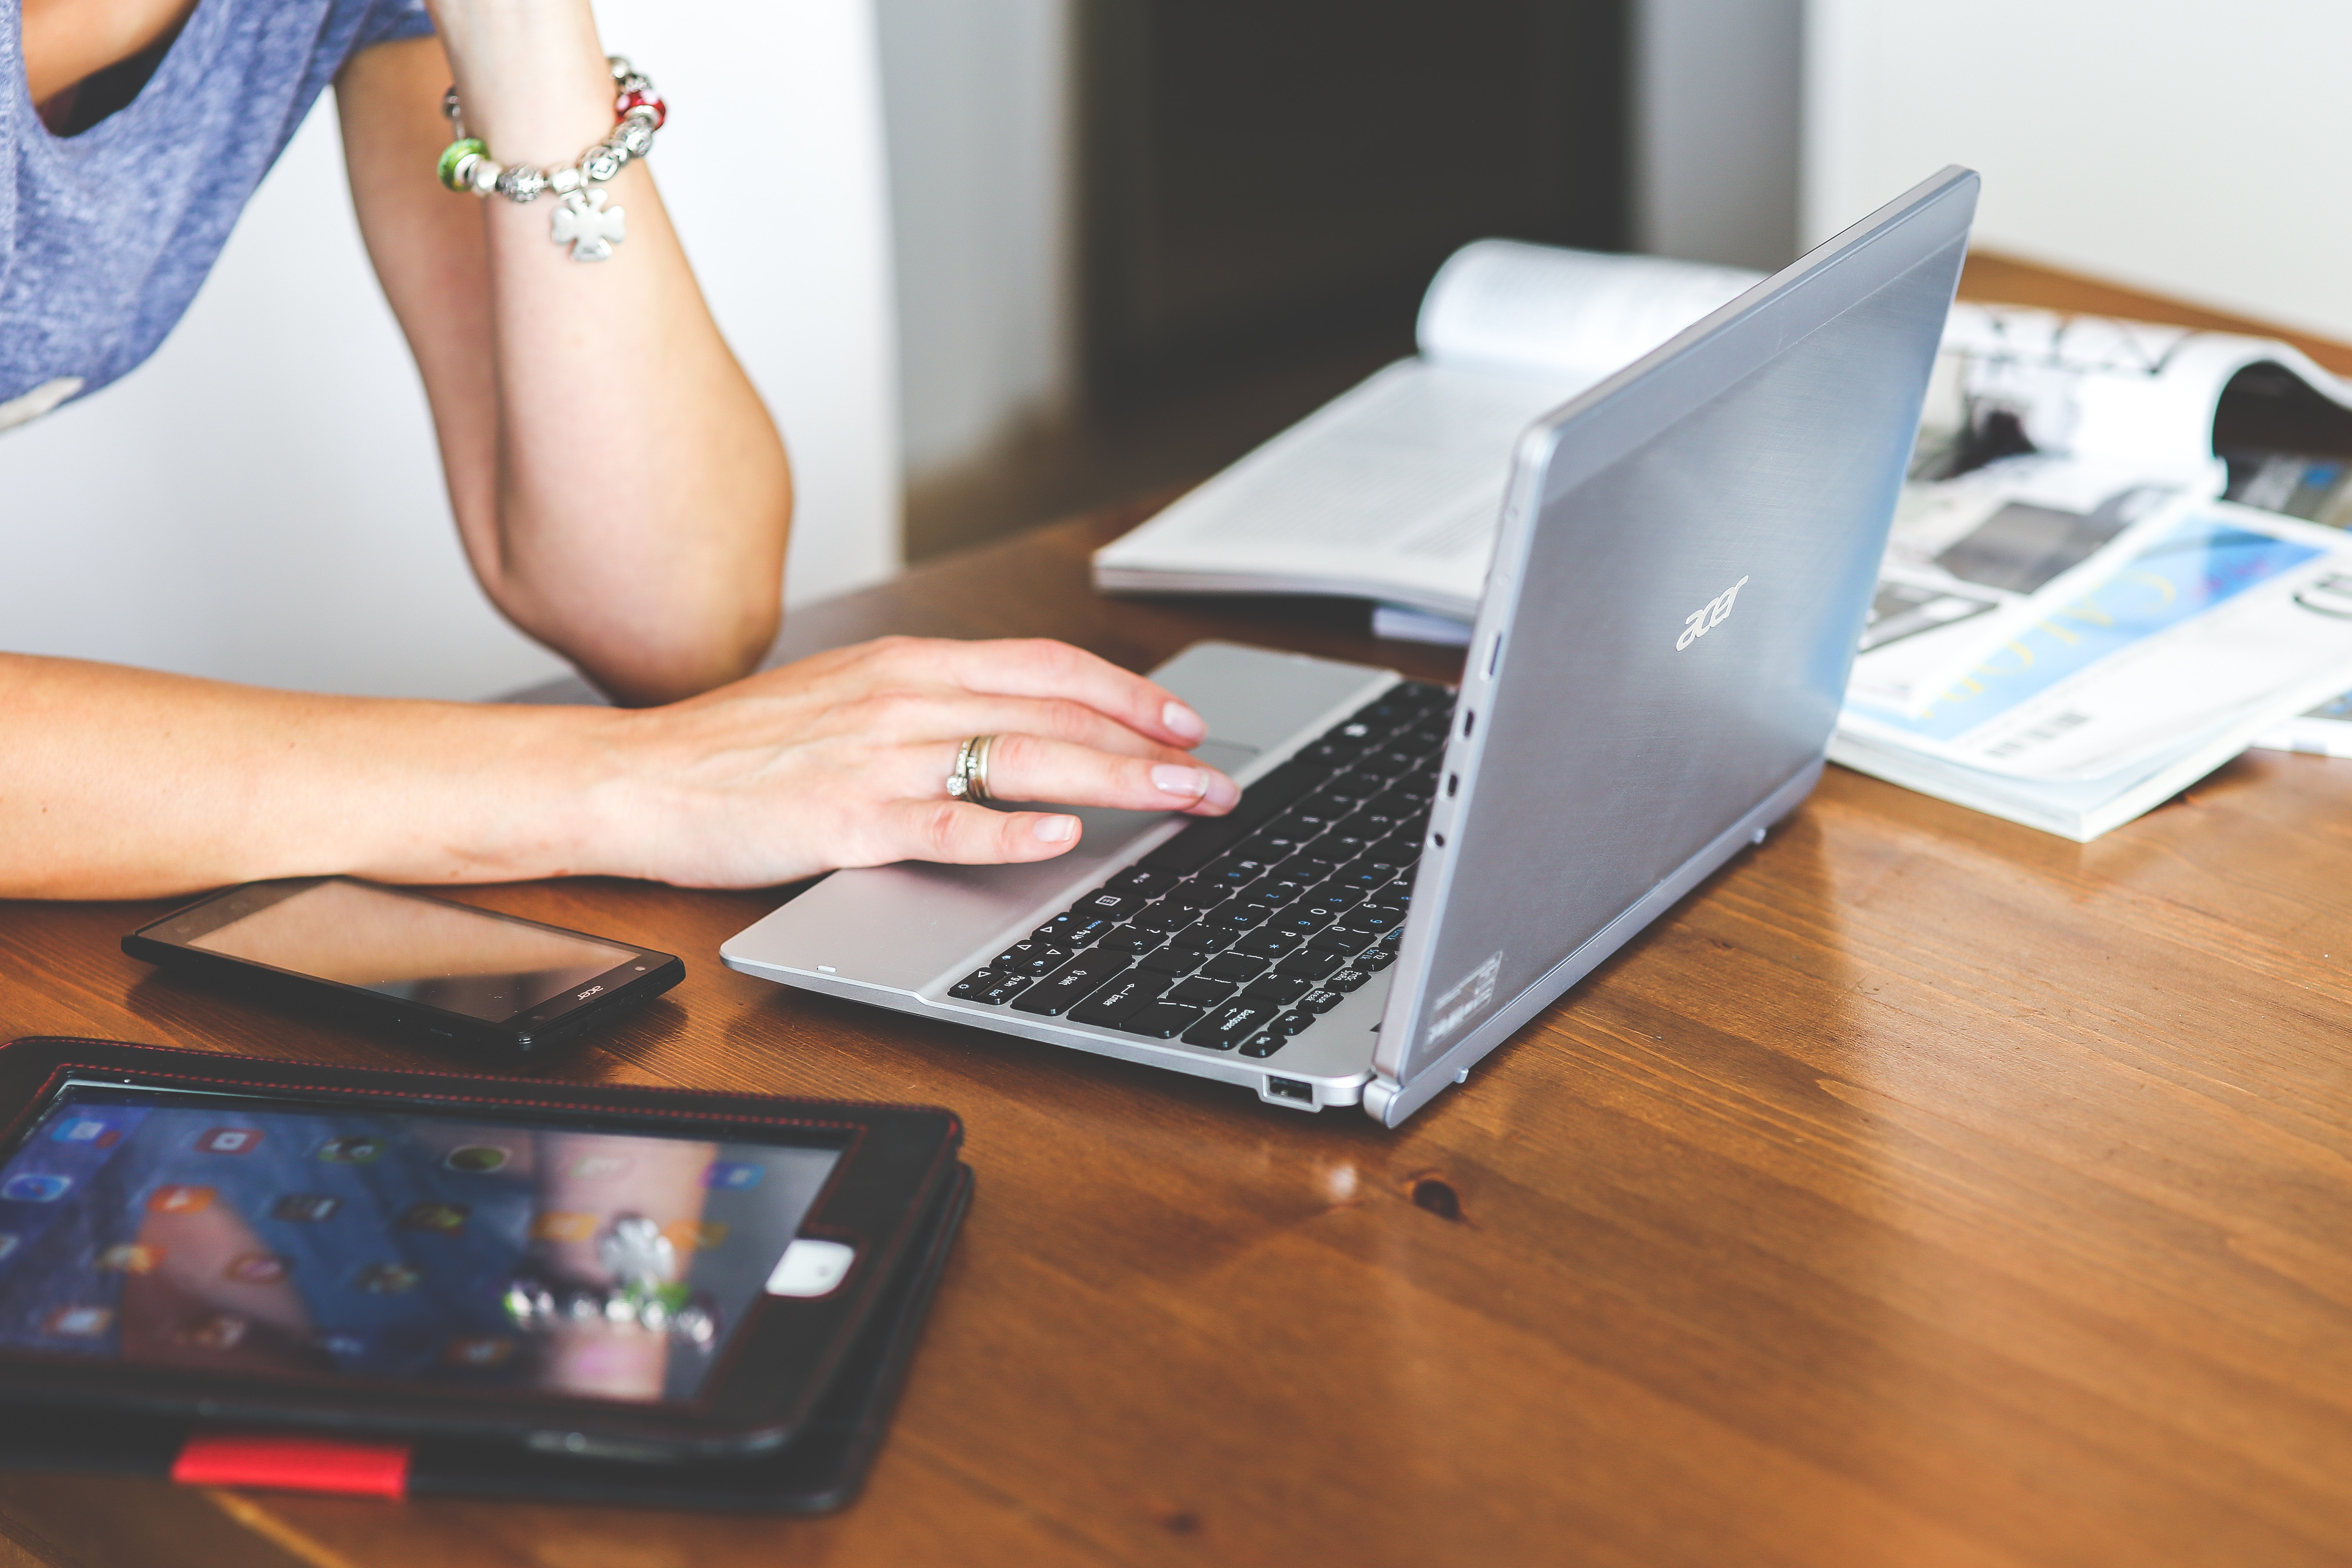 Close-up of woman typing on keyboard of laptop, Computer, Devices, Laptop, Smartphone, HQ Photo